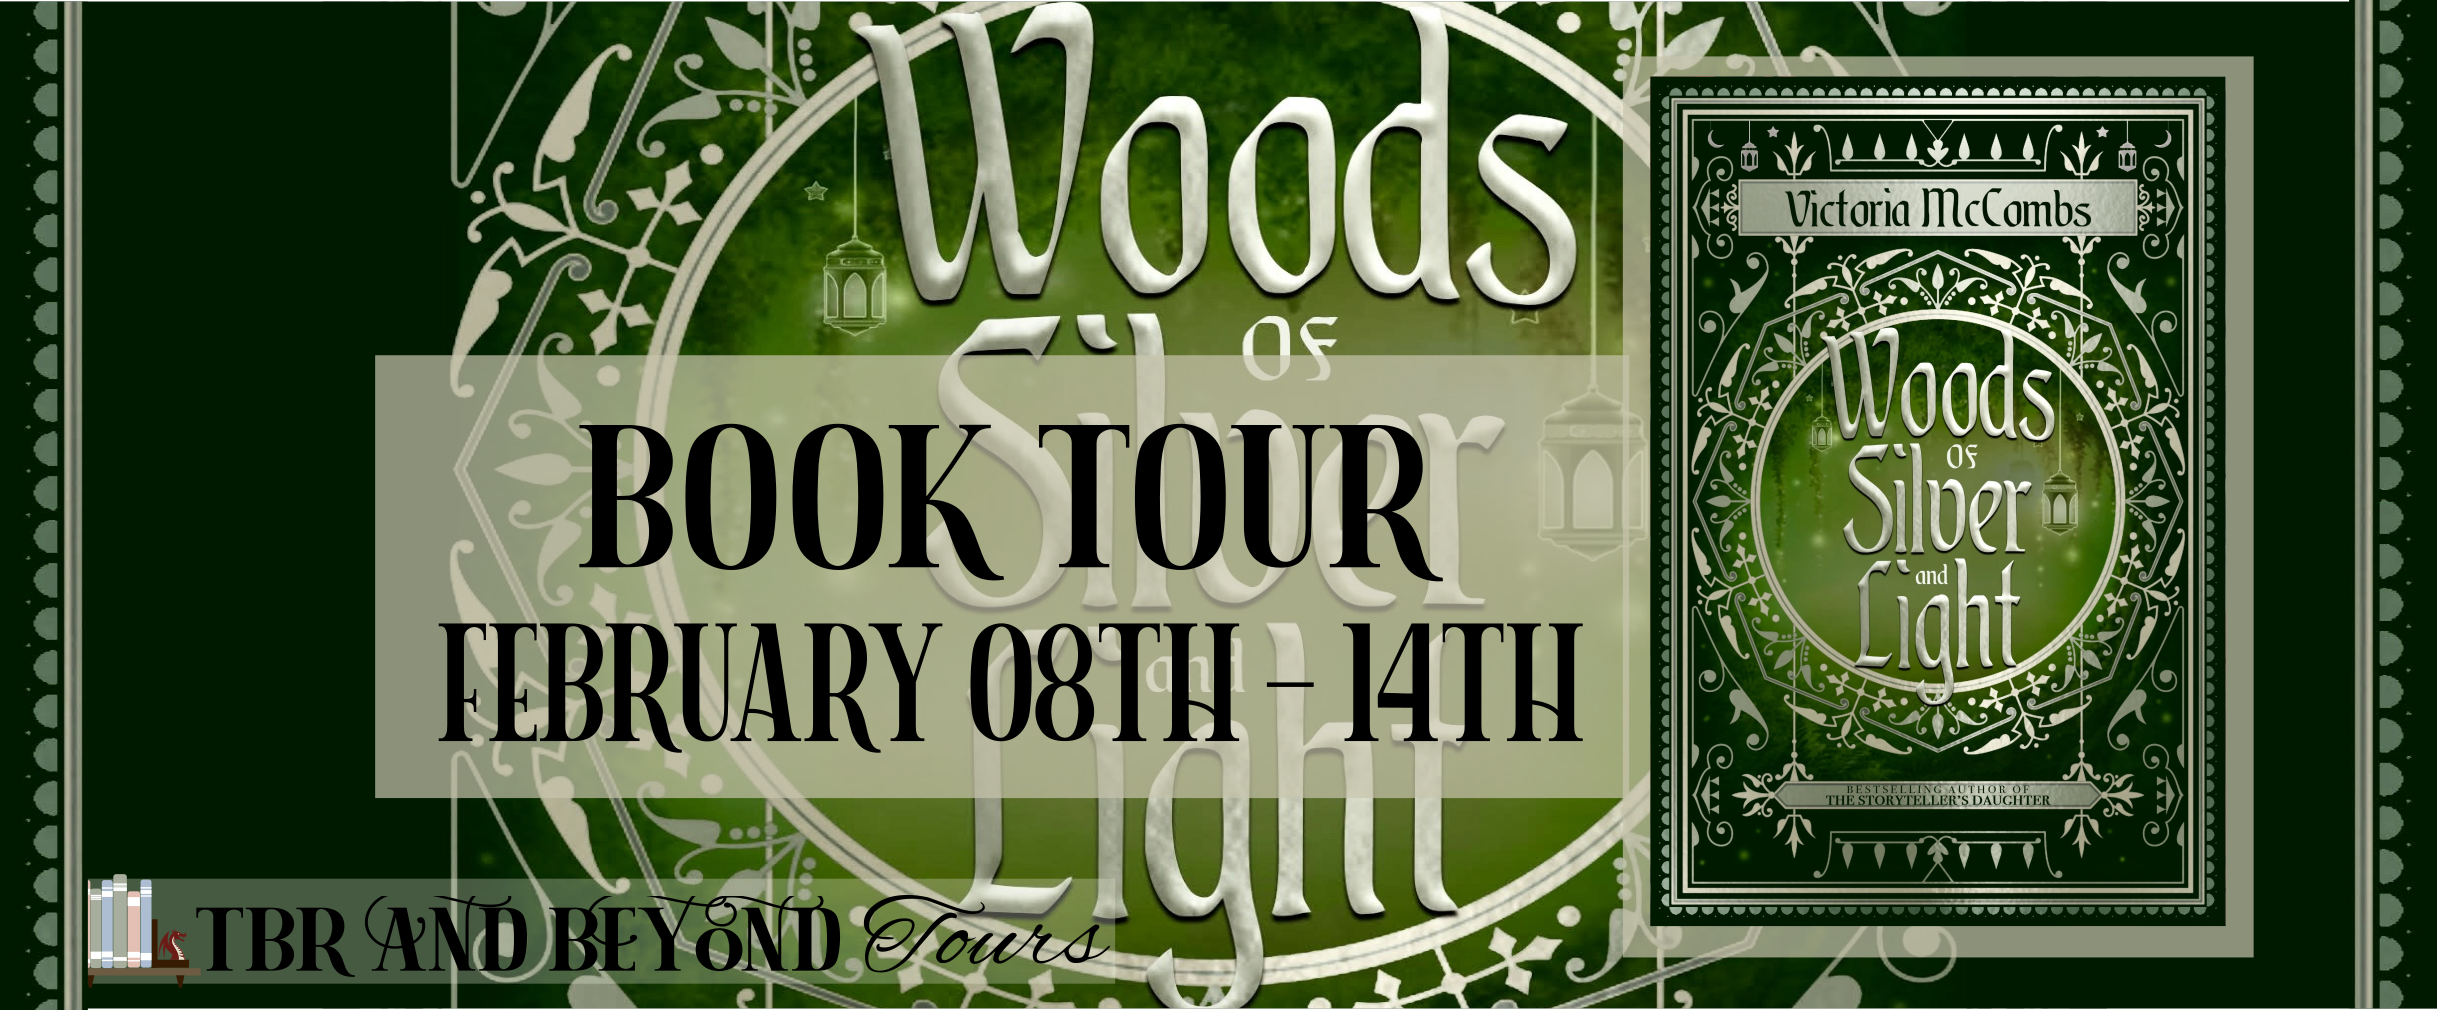 Blog Tour: Woods of Silver and Light by Victoria McCombs (Interview + Bookstagram!)